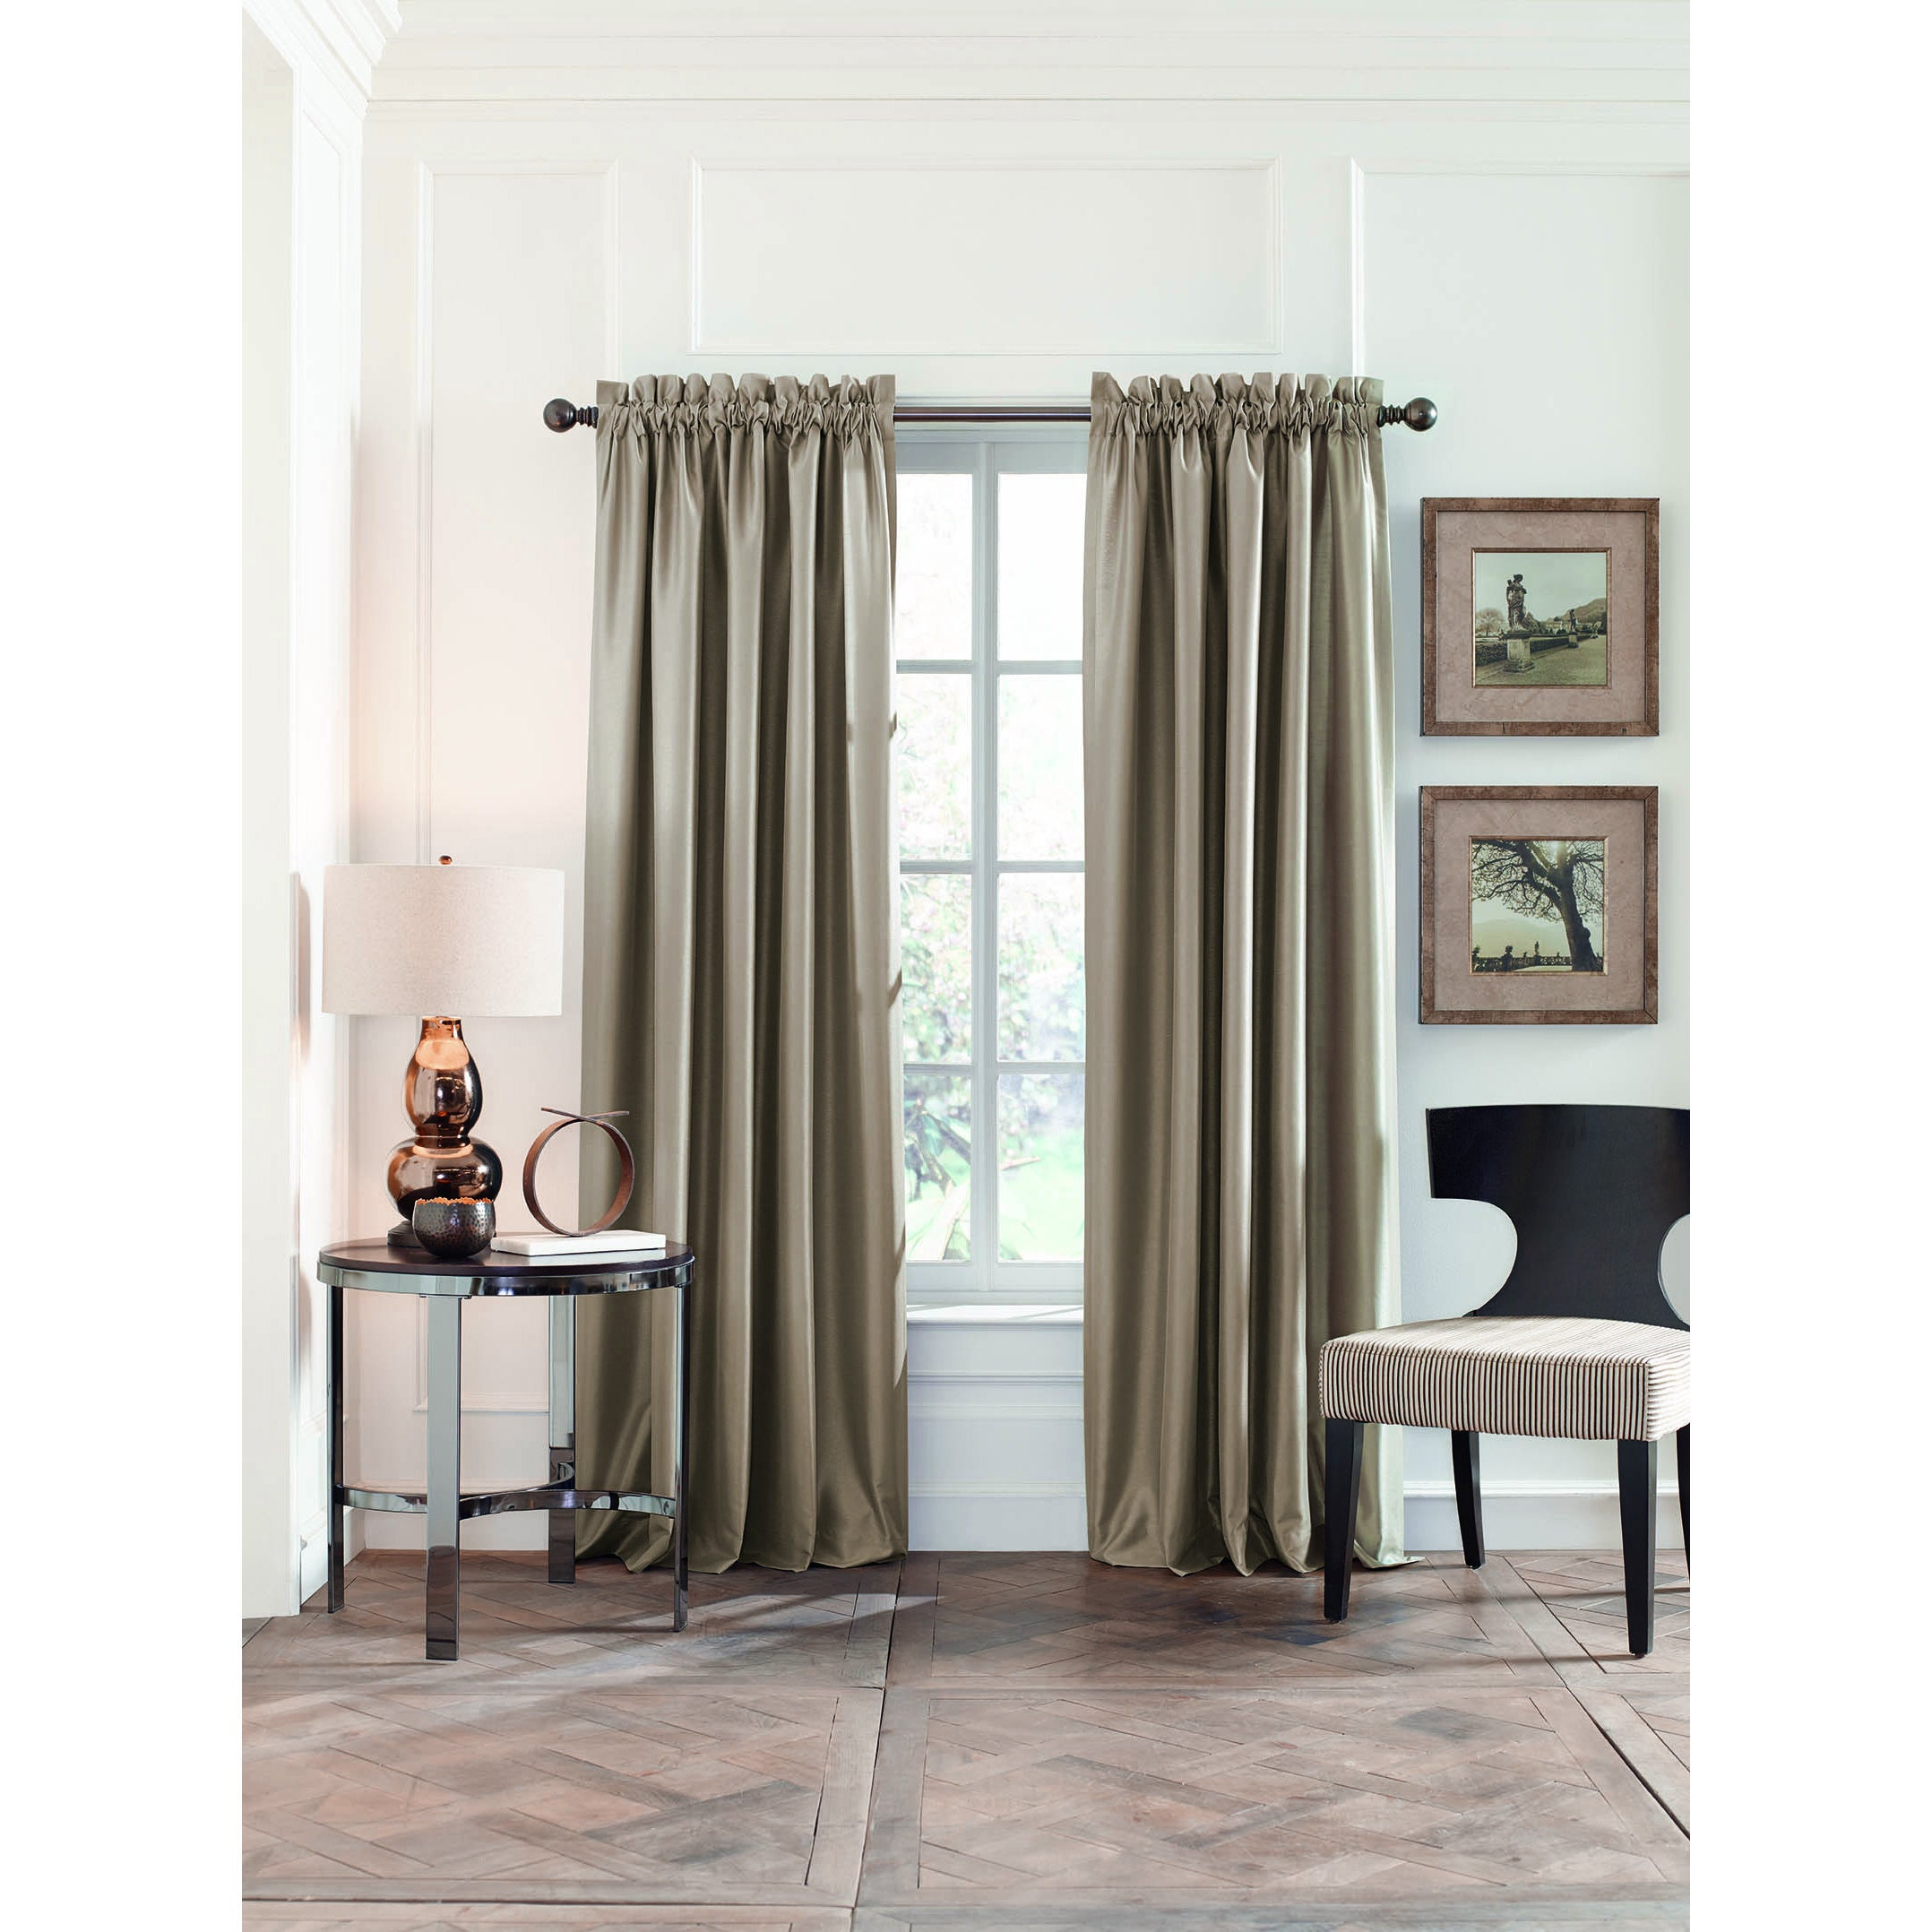 Perry Ellis Faux Silk Blackout Curtain Panel Pair Regarding Overseas Faux Silk Blackout Curtain Panel Pairs (View 10 of 20)